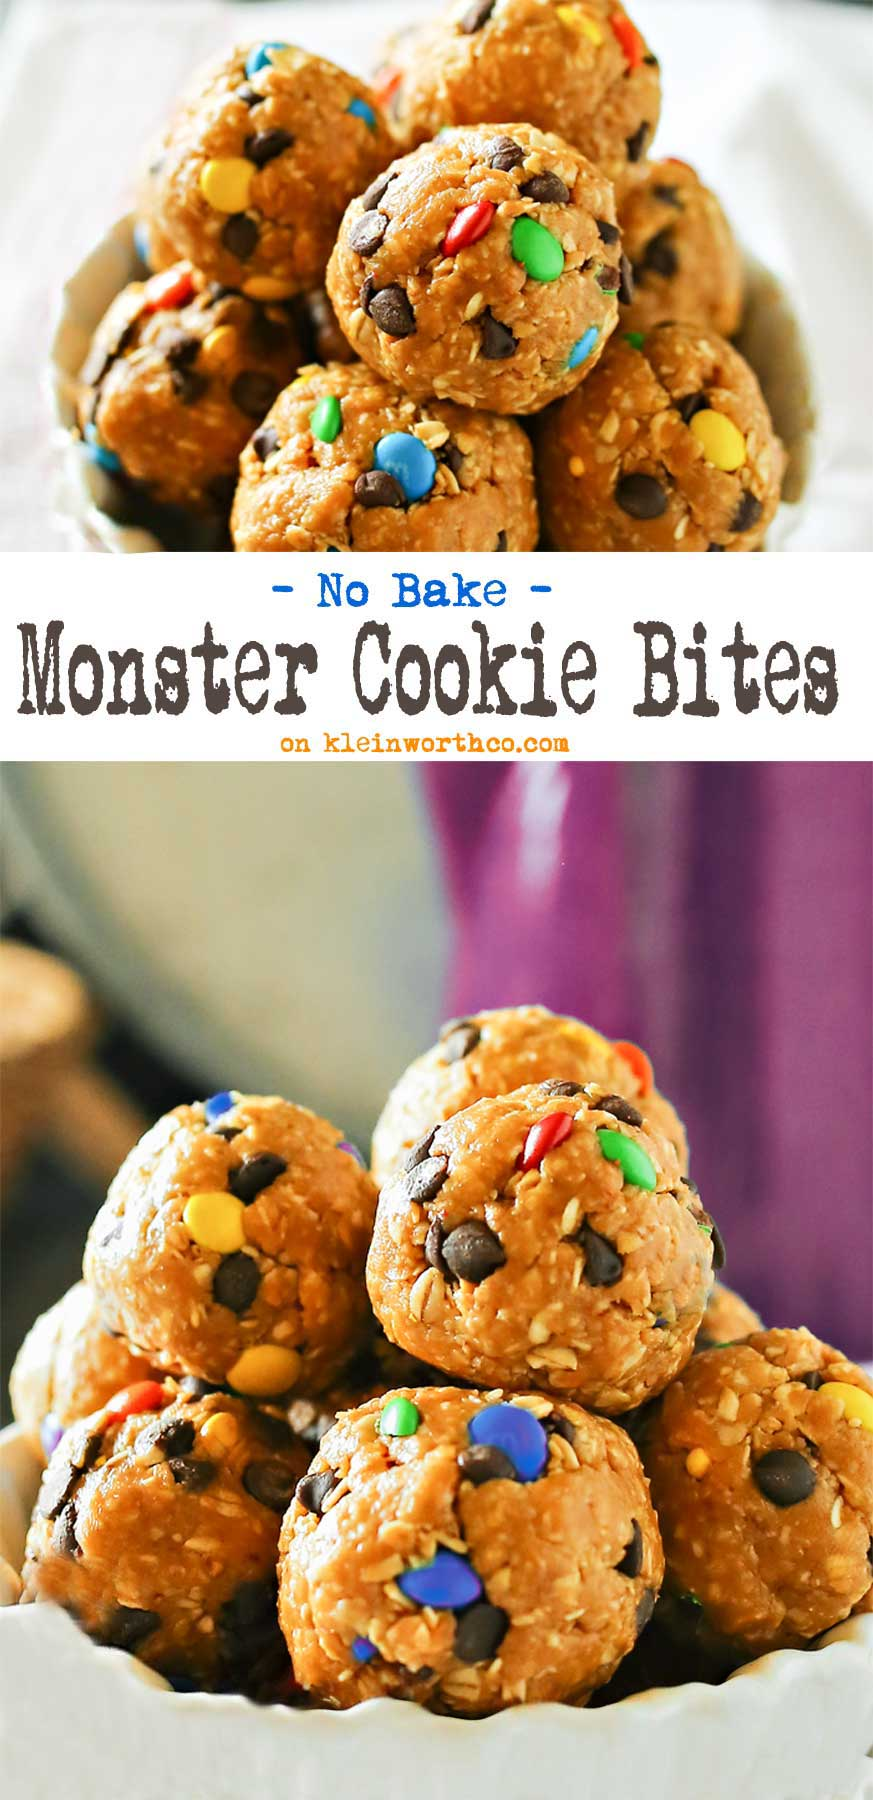 Monster Cookie Bites